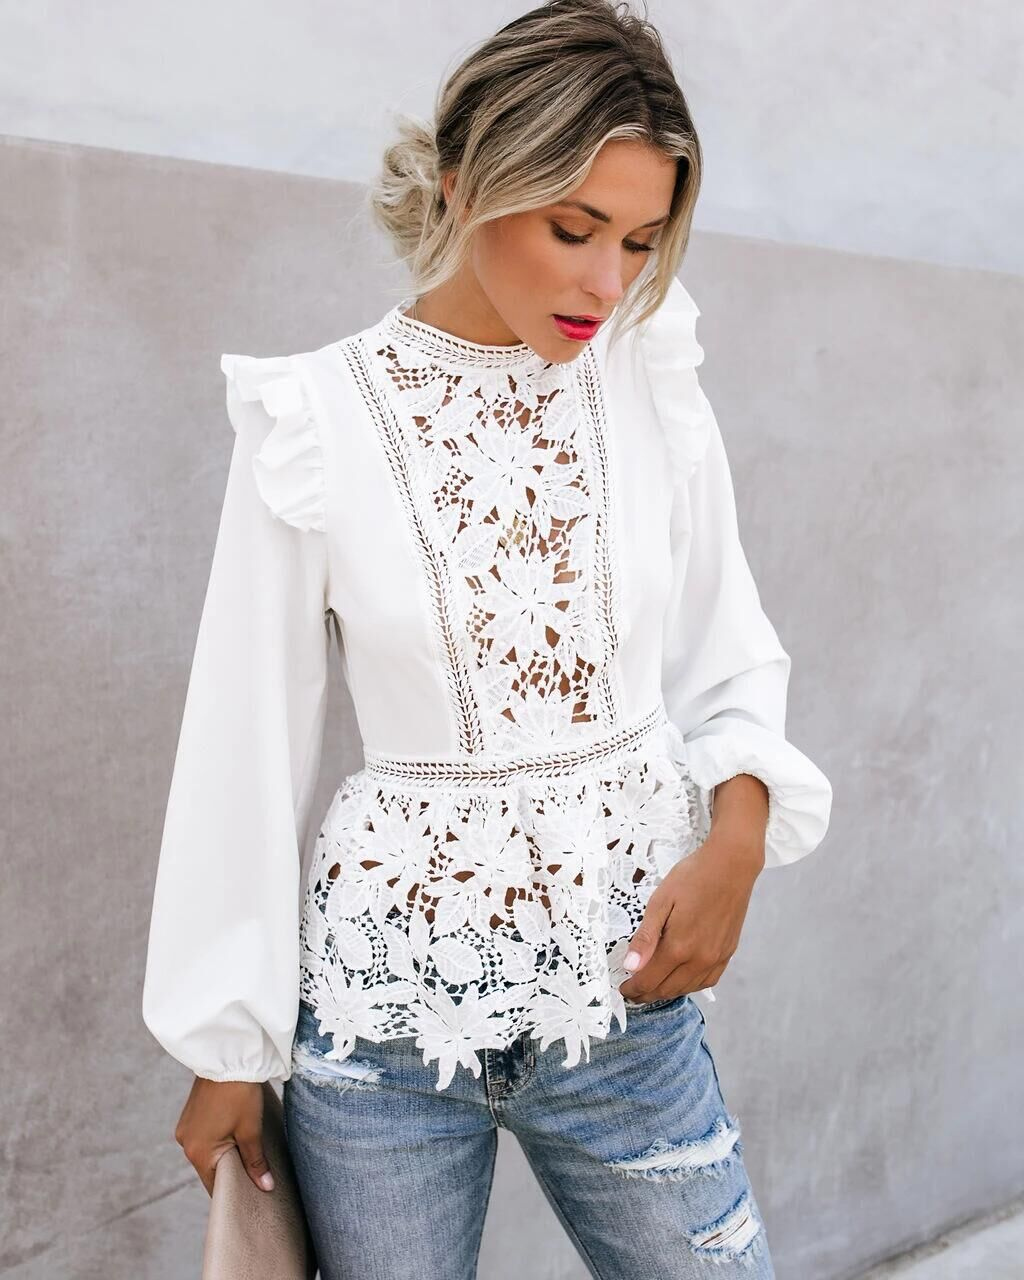 Women Floral Lace Blouses Boho Long Sleeve White Tops Ladies Hollow Out Shirts Autumn Spring Elegant Blouse Streetwear S-XL 3